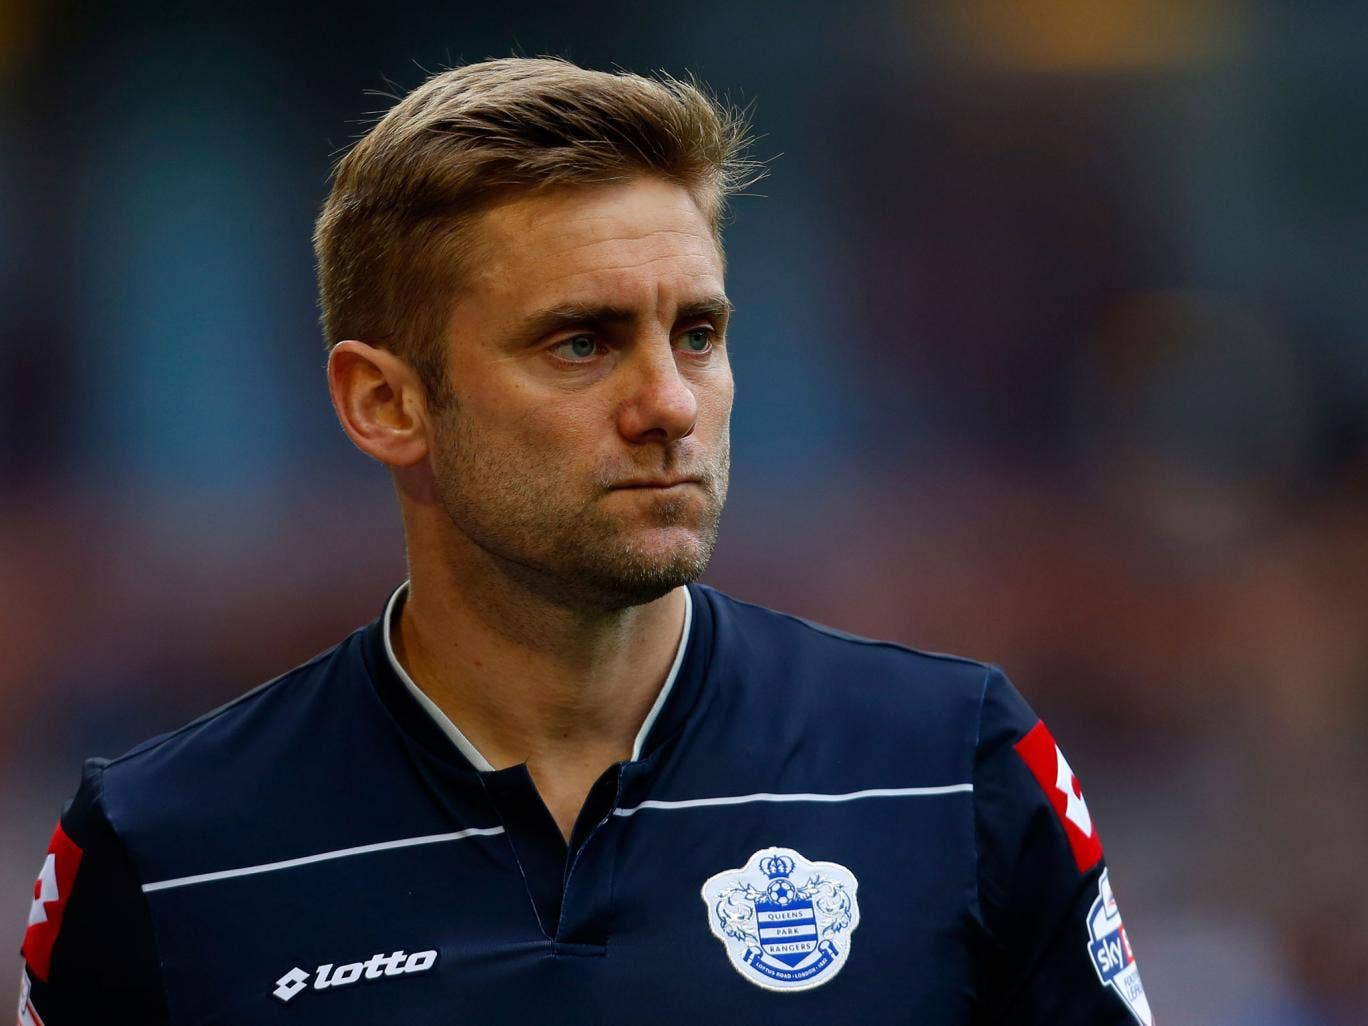 Rob Green's World Cup calamity cost him his place and his reputation – and led to years of angst